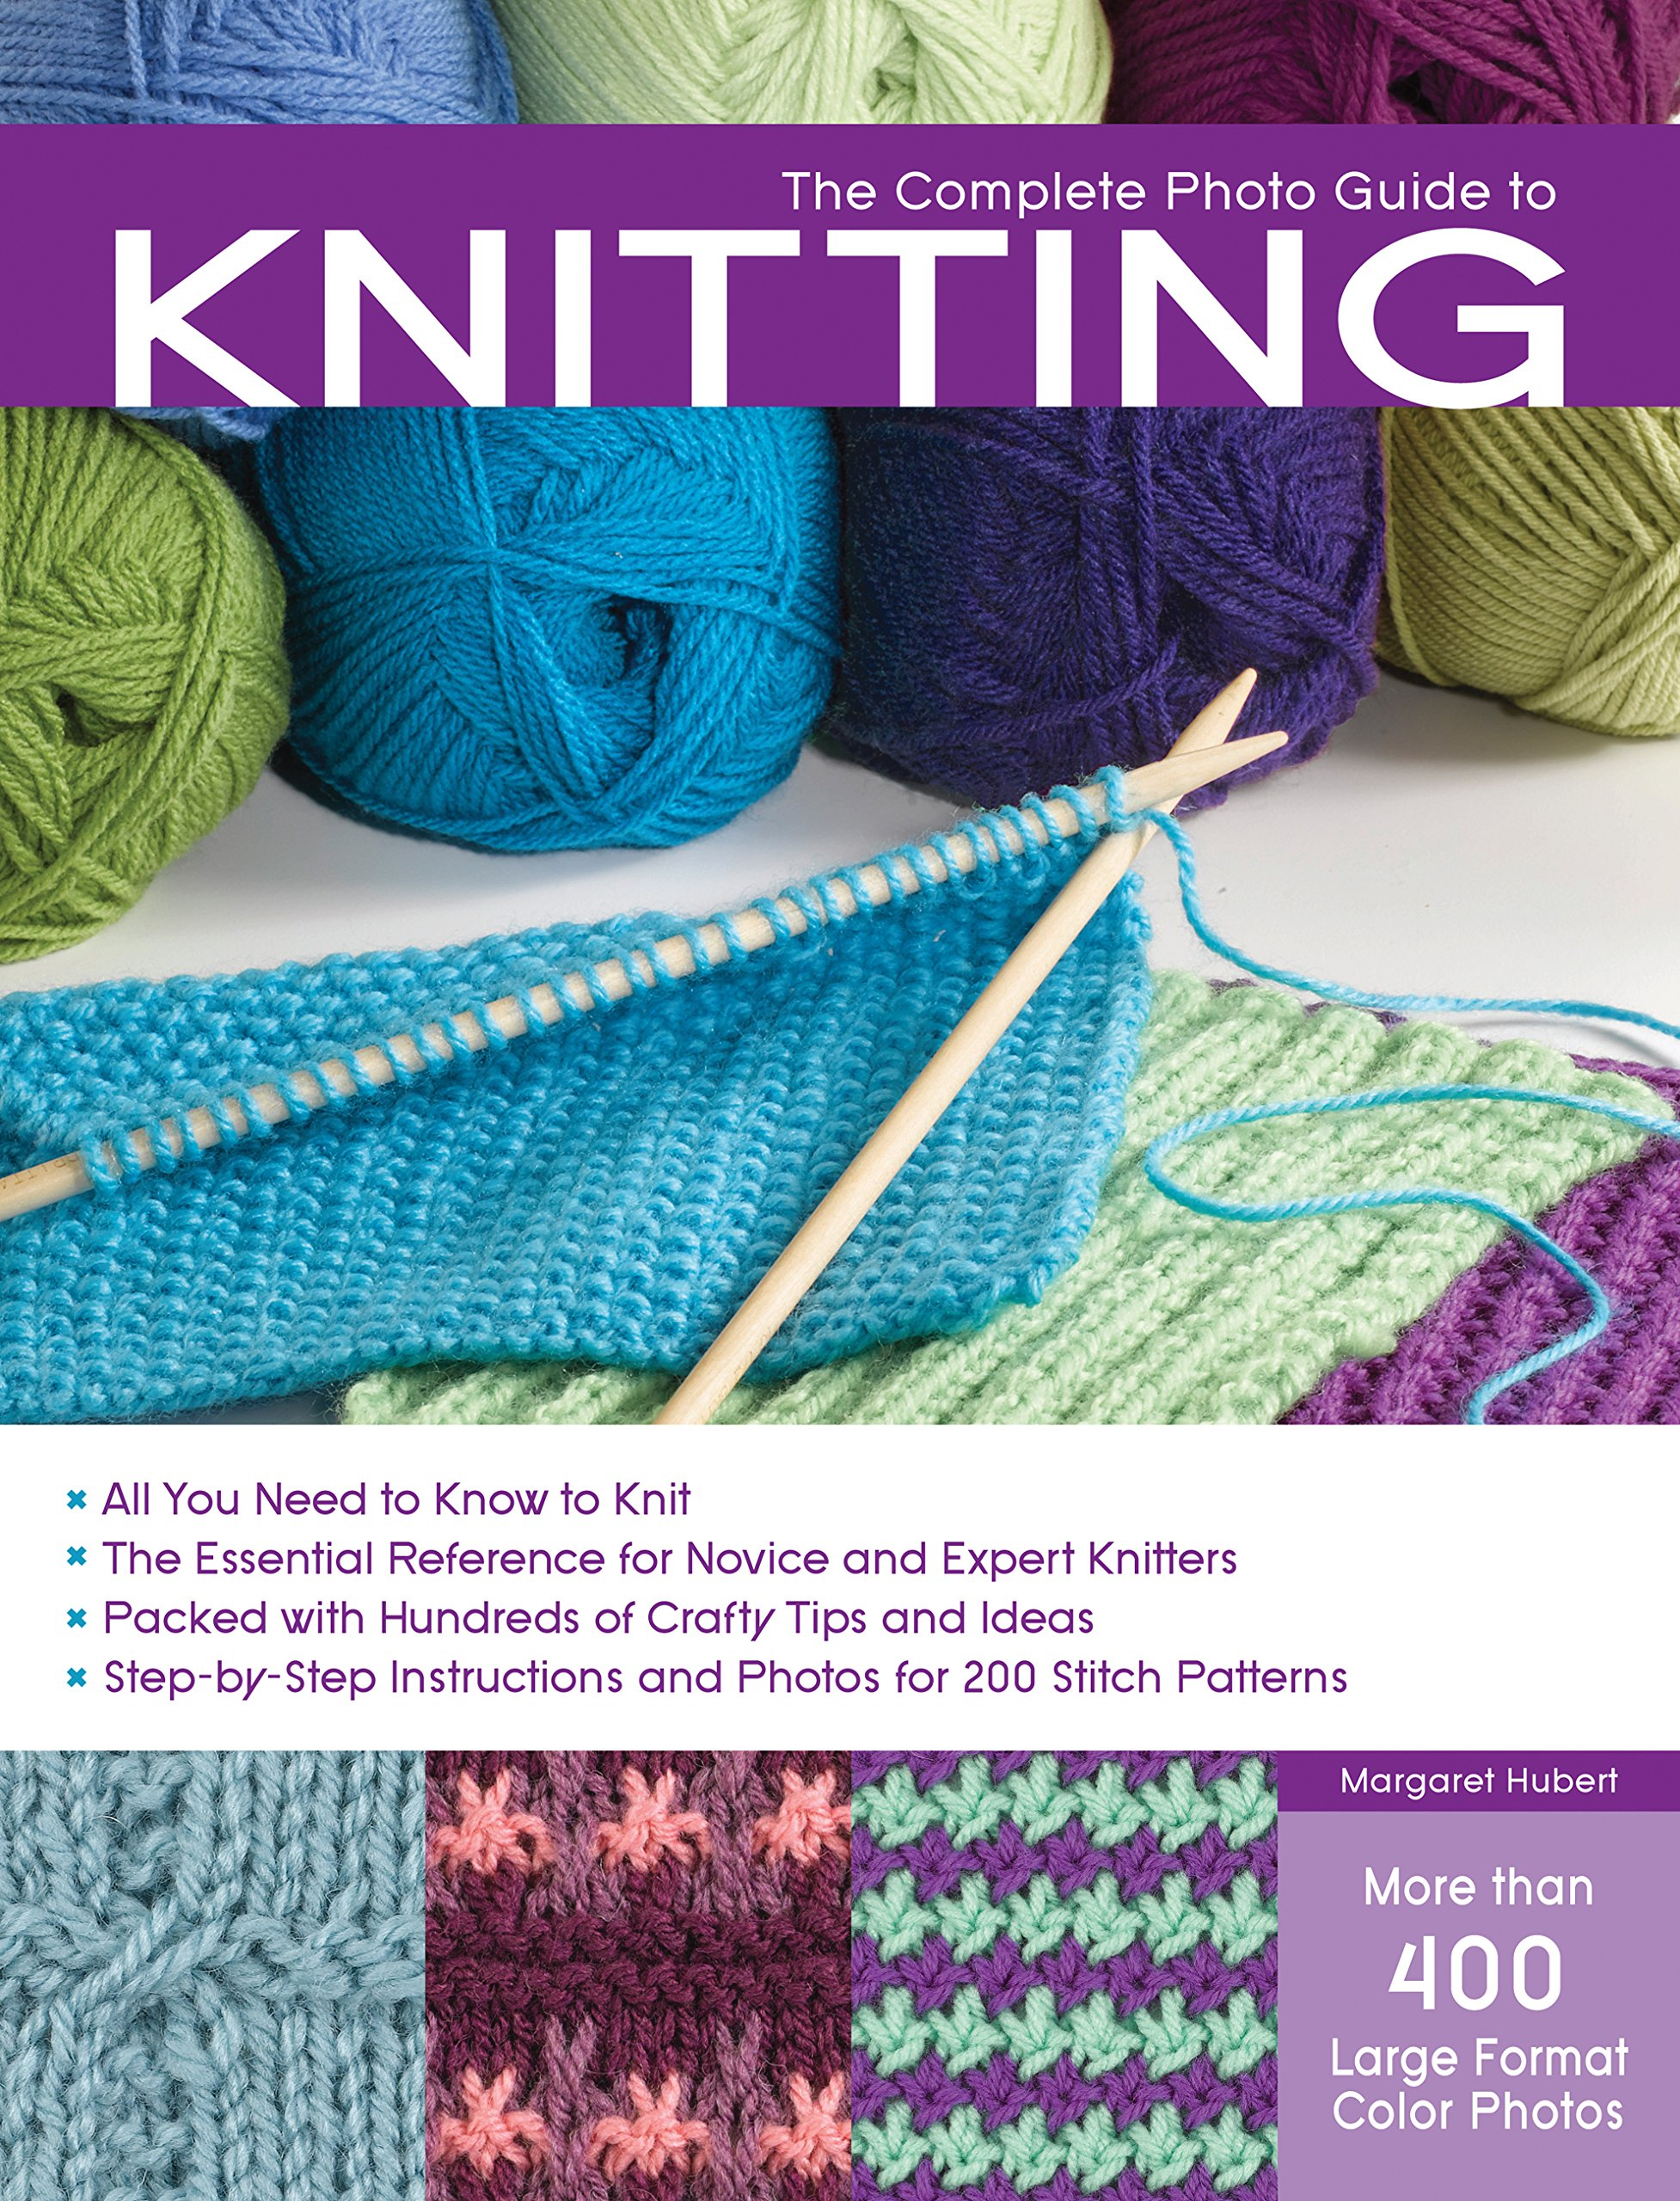 The Complete Photo Guide to Knitting: *All You Need to Know to Knit *The Essential Reference for Novice and Expert Knitters *Packed with Hundreds of ... and Photos for 200 Stitch Patterns Paperback – July 1, 2010 Margaret Hubert Creative Publishing int'